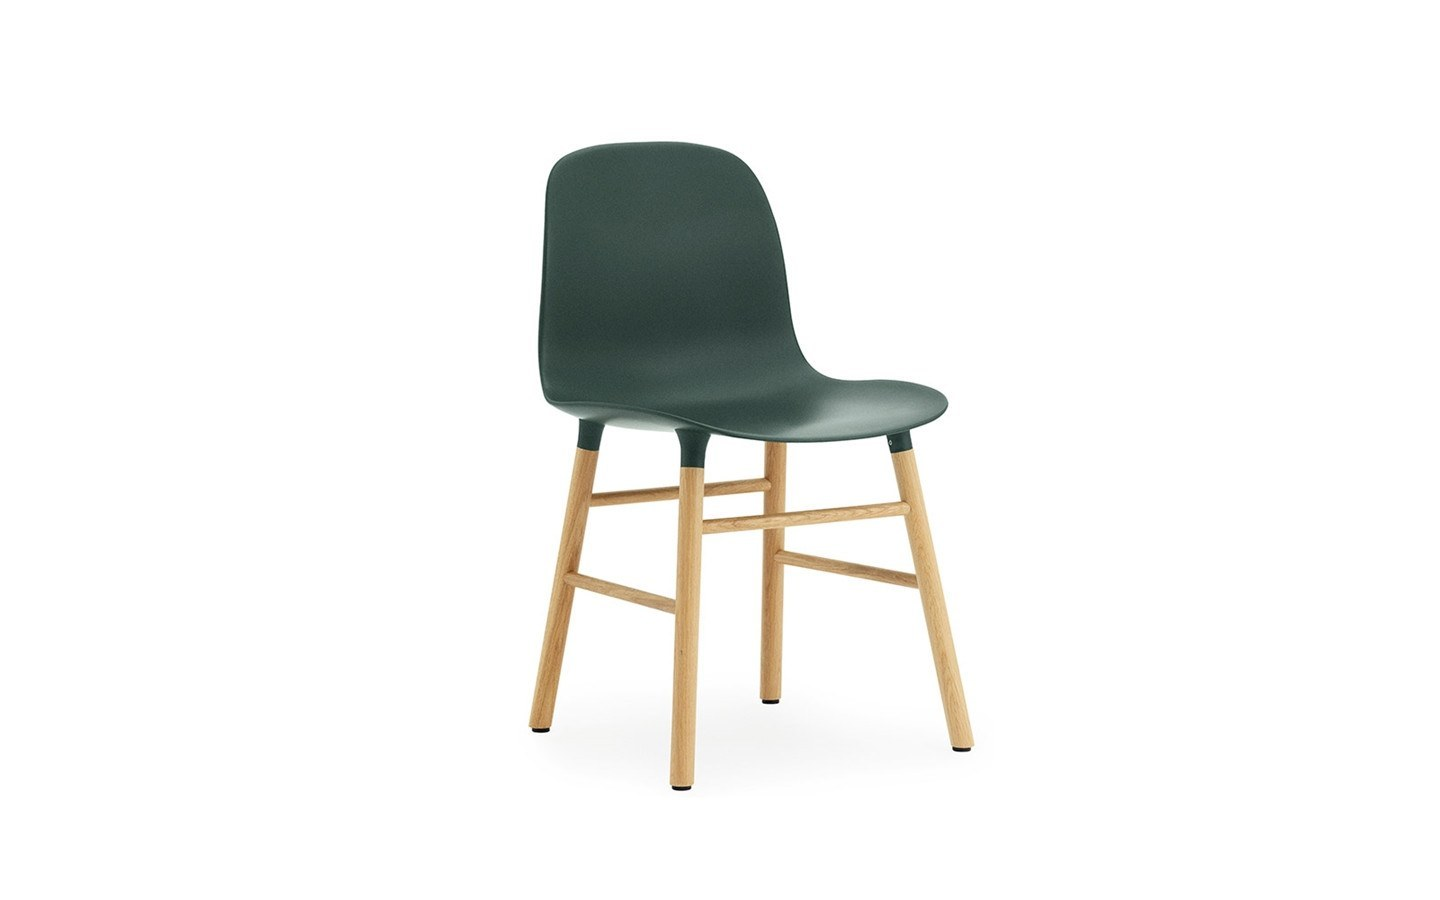 NORMANN COPENHAGEN FORM CHAIR-STEEL BASE - Eclectic Cool  - 3